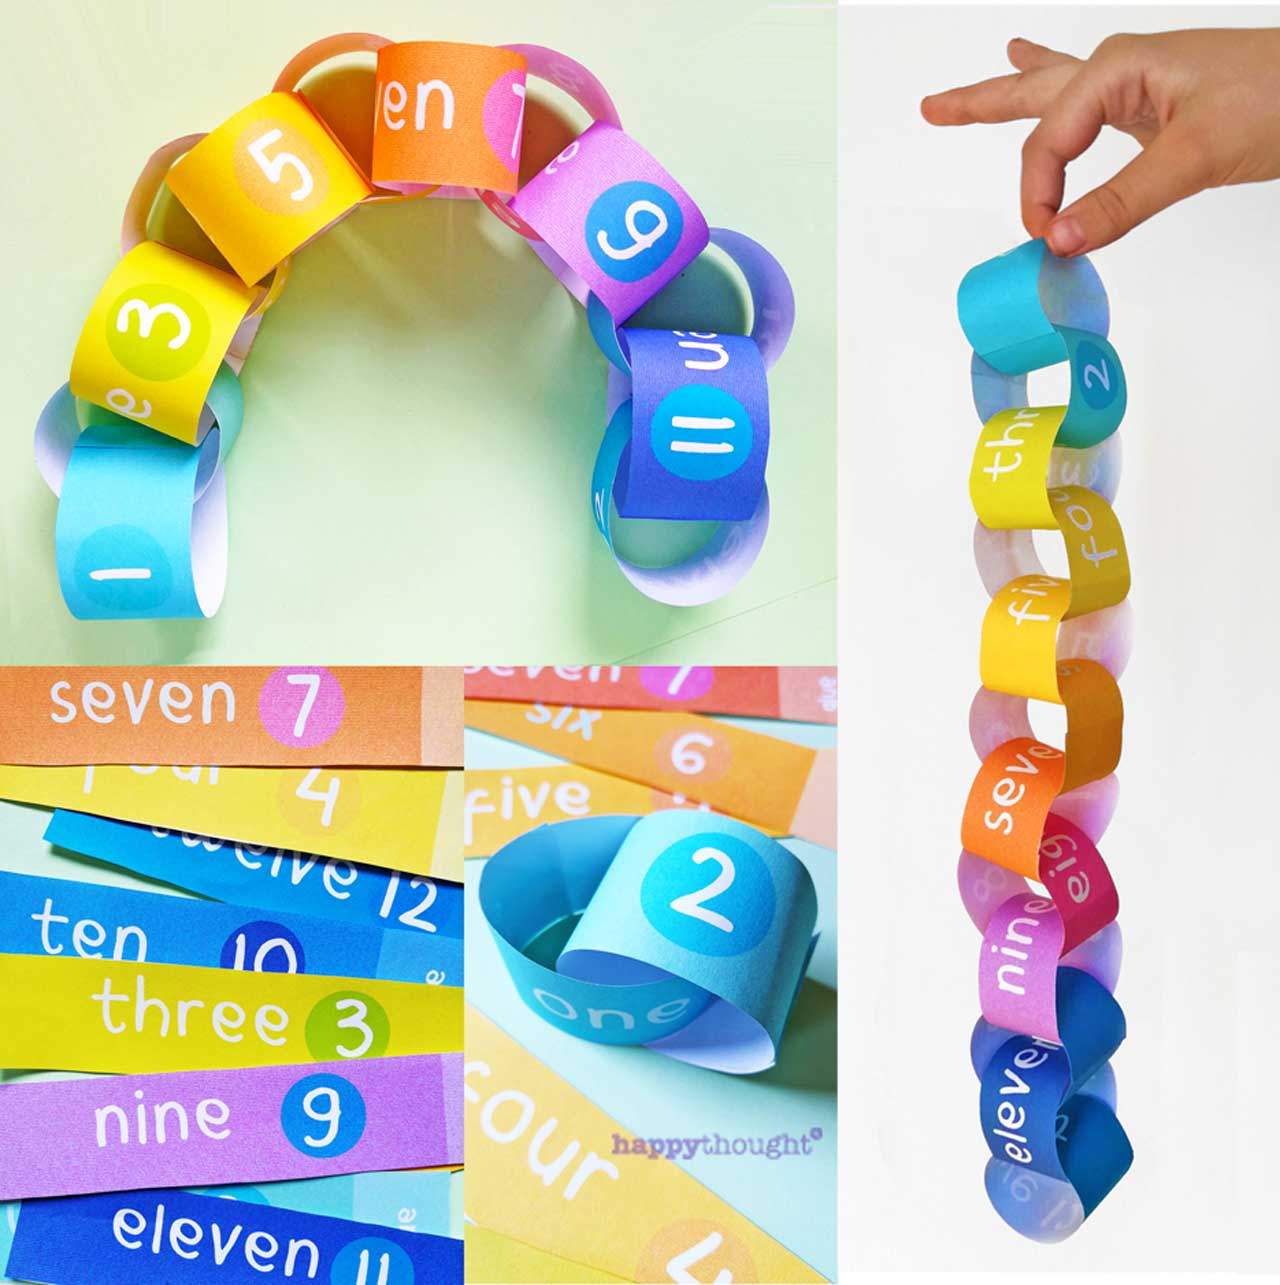 paperchain preschool printable homeschool activity fun worksheetsfrom Happythought